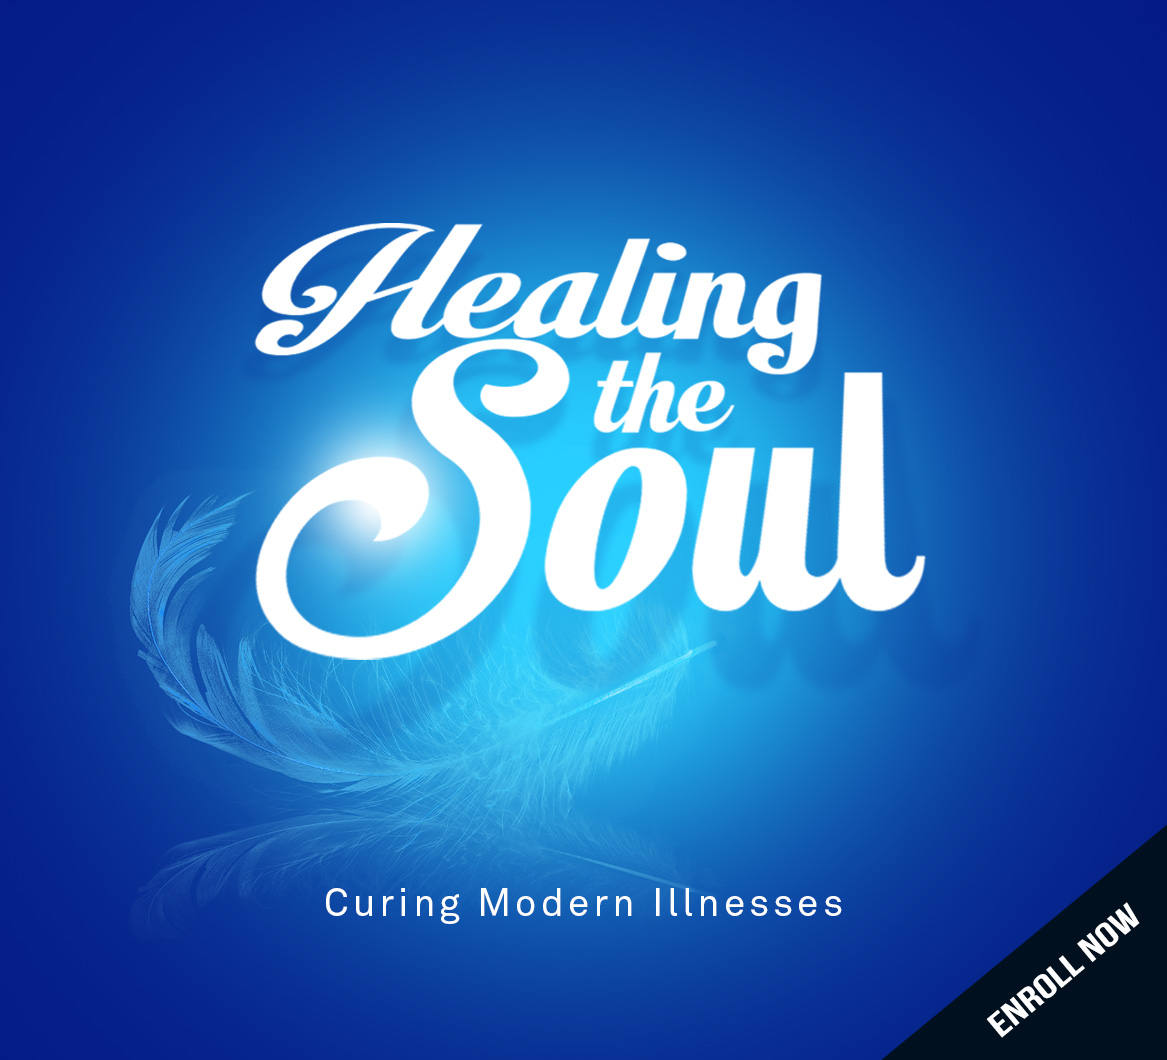 Healing the Soul: Curing Modern Illnesses (PSY 001)